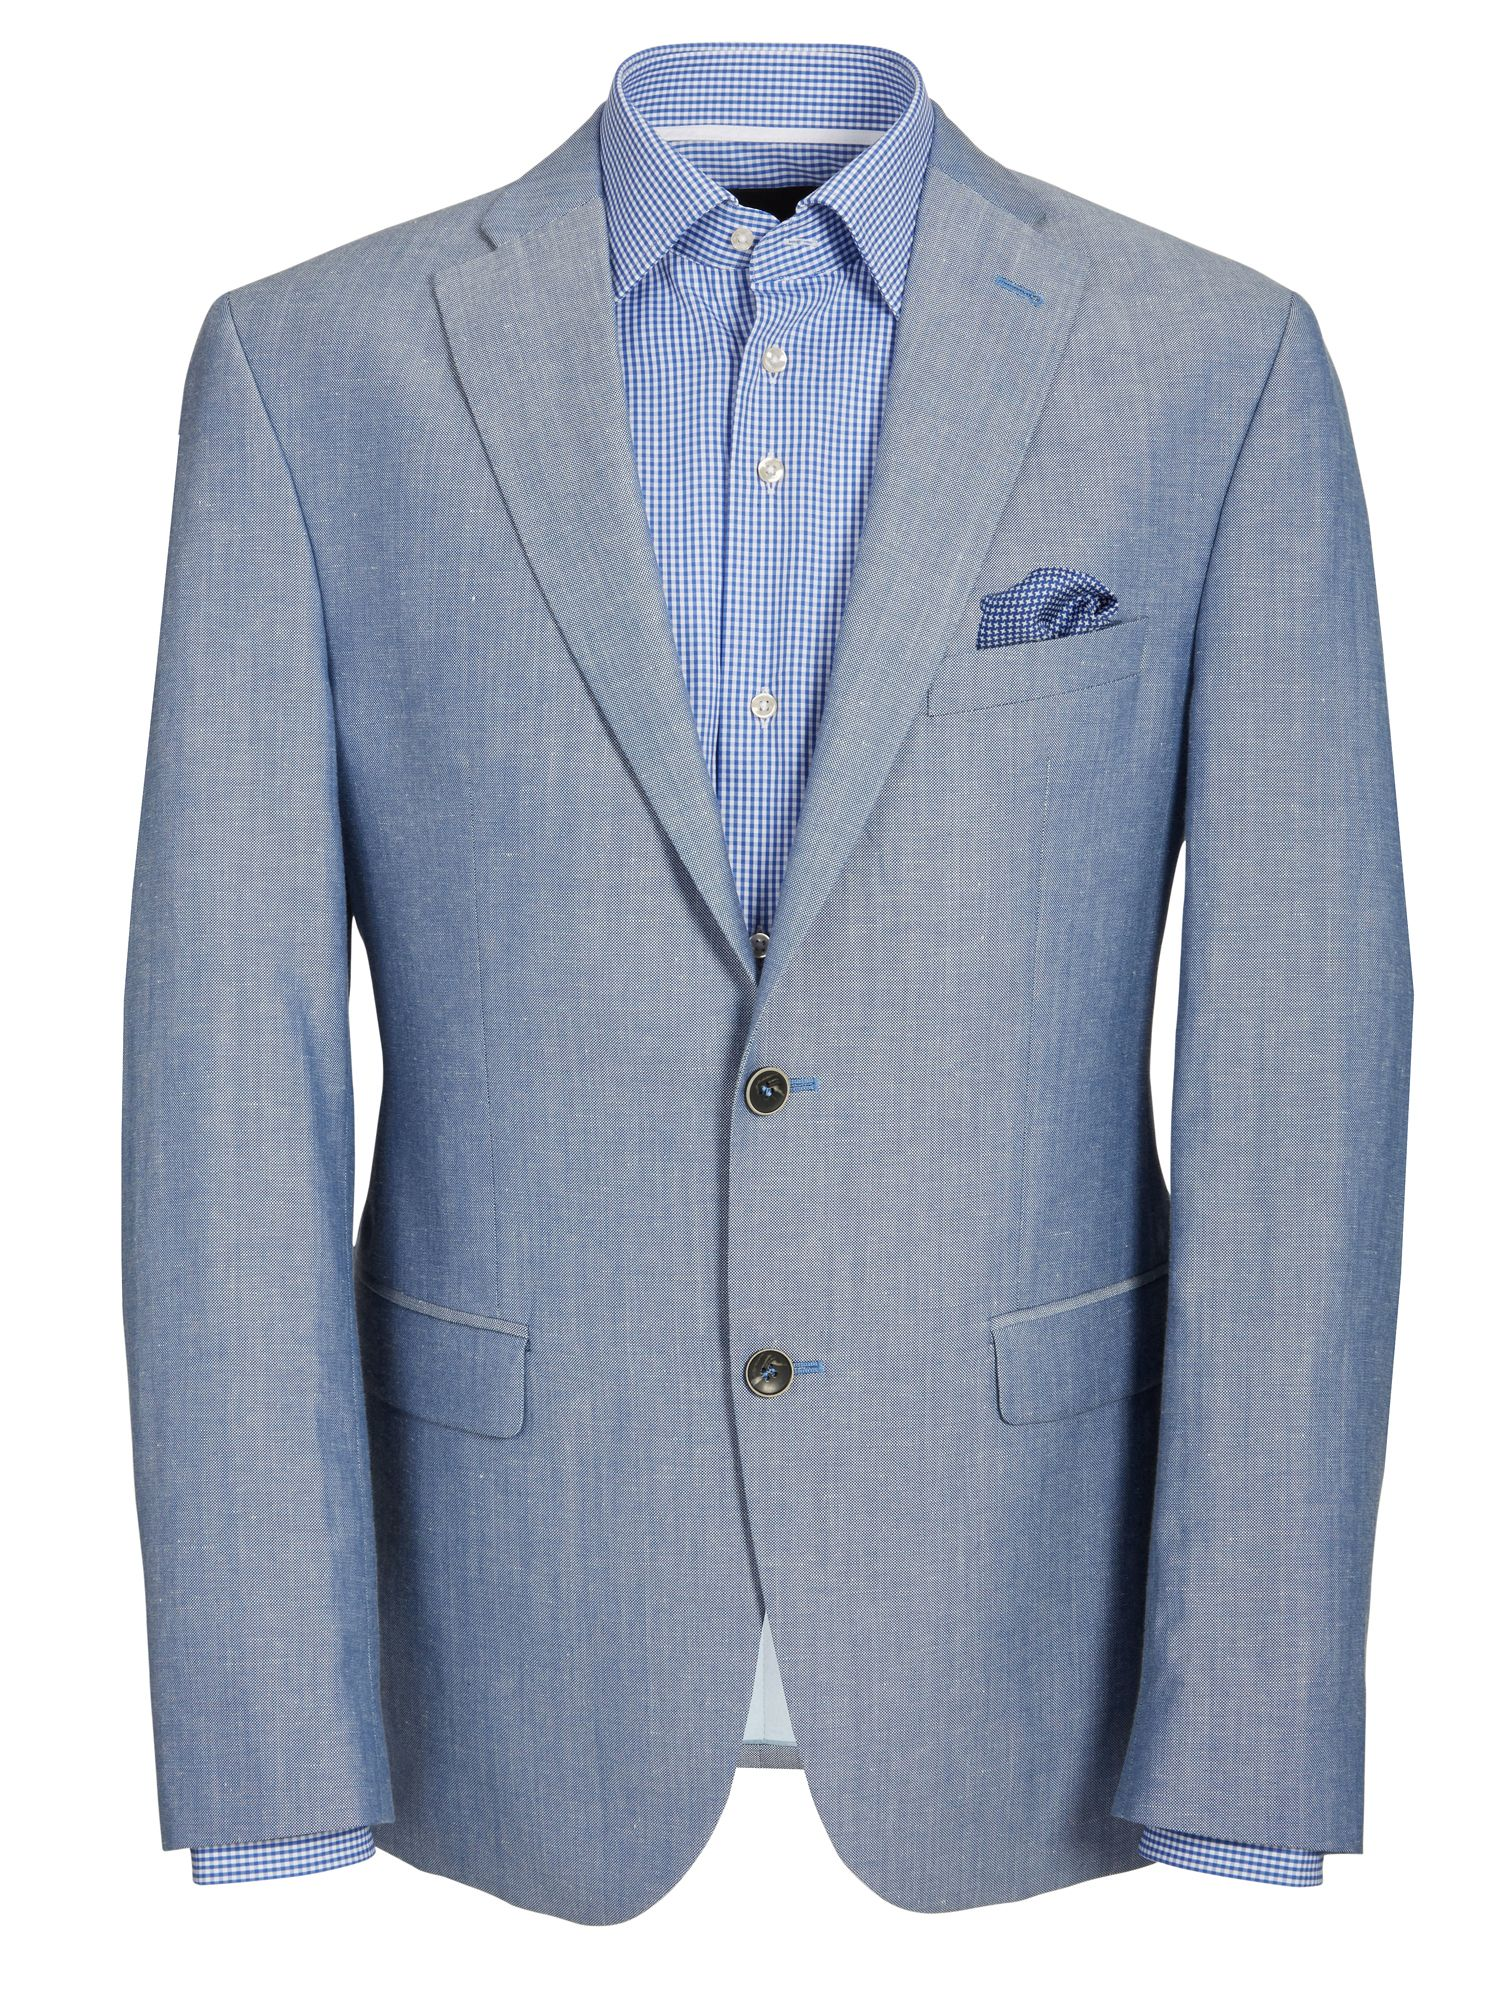 Linen formal single breasted suit jacket